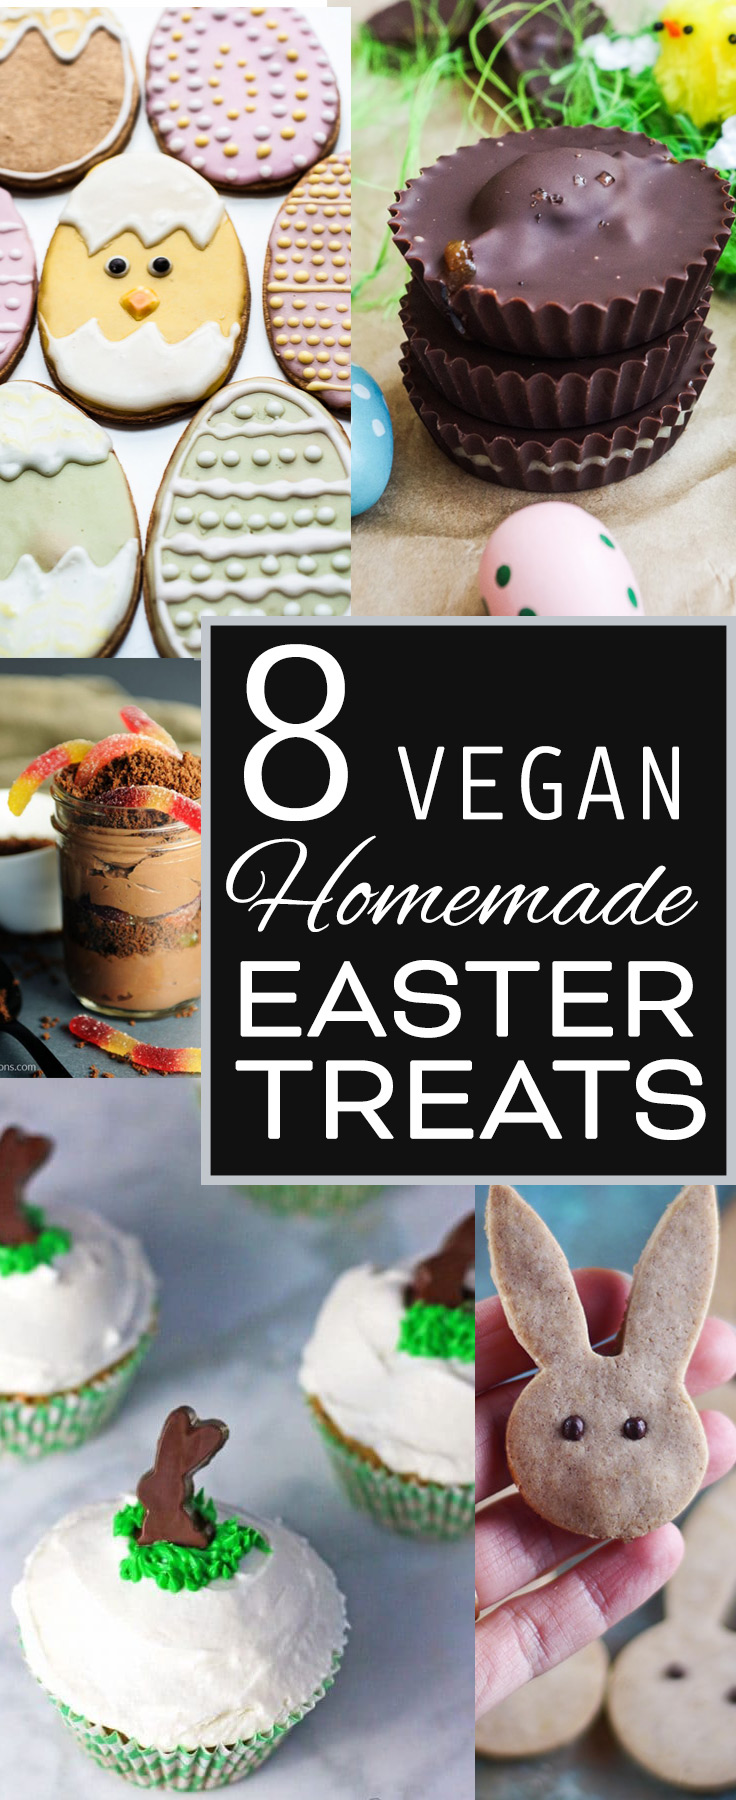 8 Homemade Vegan Treat Gifts for Easter & Other Spring Gatherings